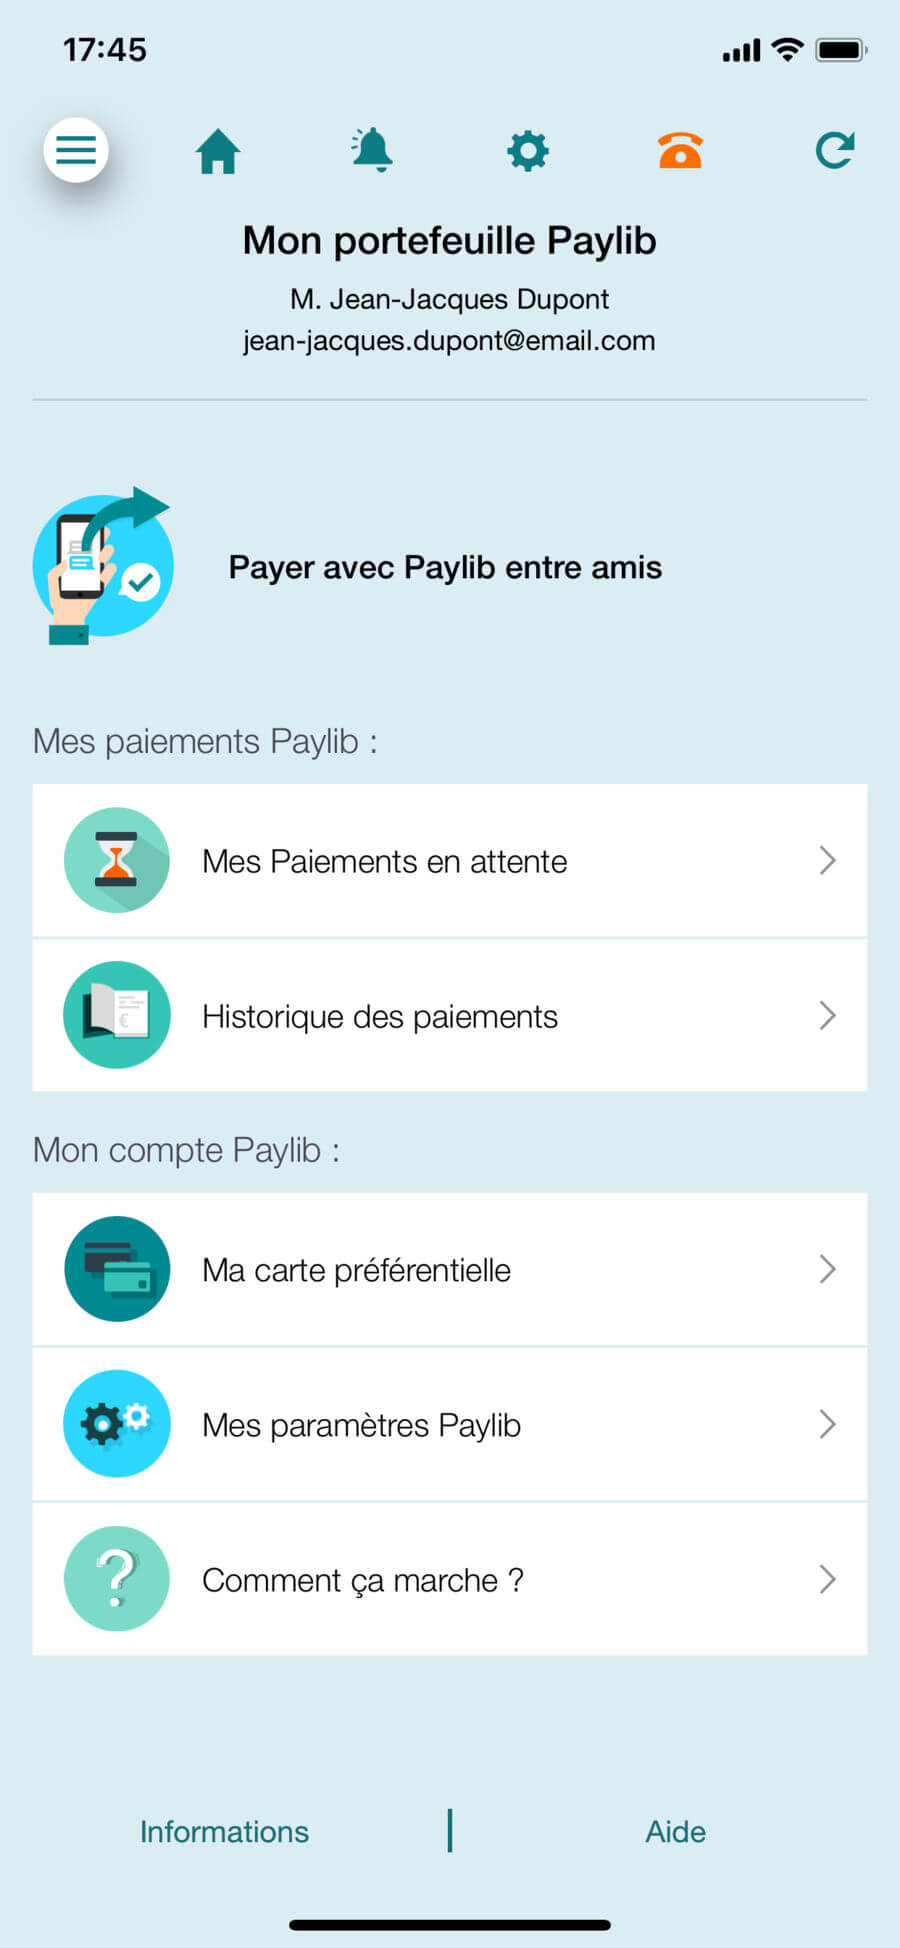 Paylib, le paiement mobile sans contact sur l'application Ma Carte